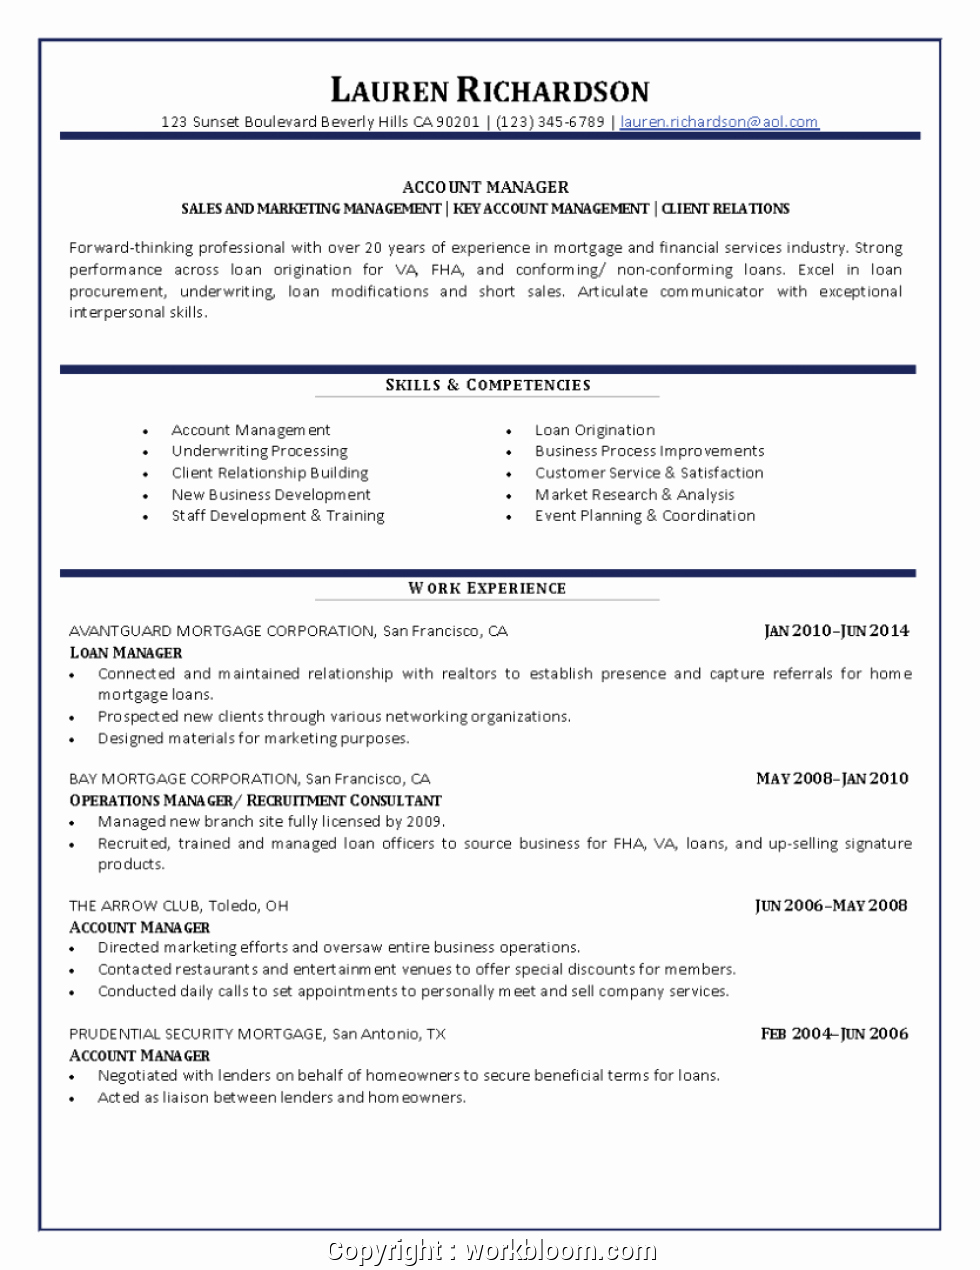 Key Account Manager Resume Unique Print Key Account Manager Resume Account Manager Resume